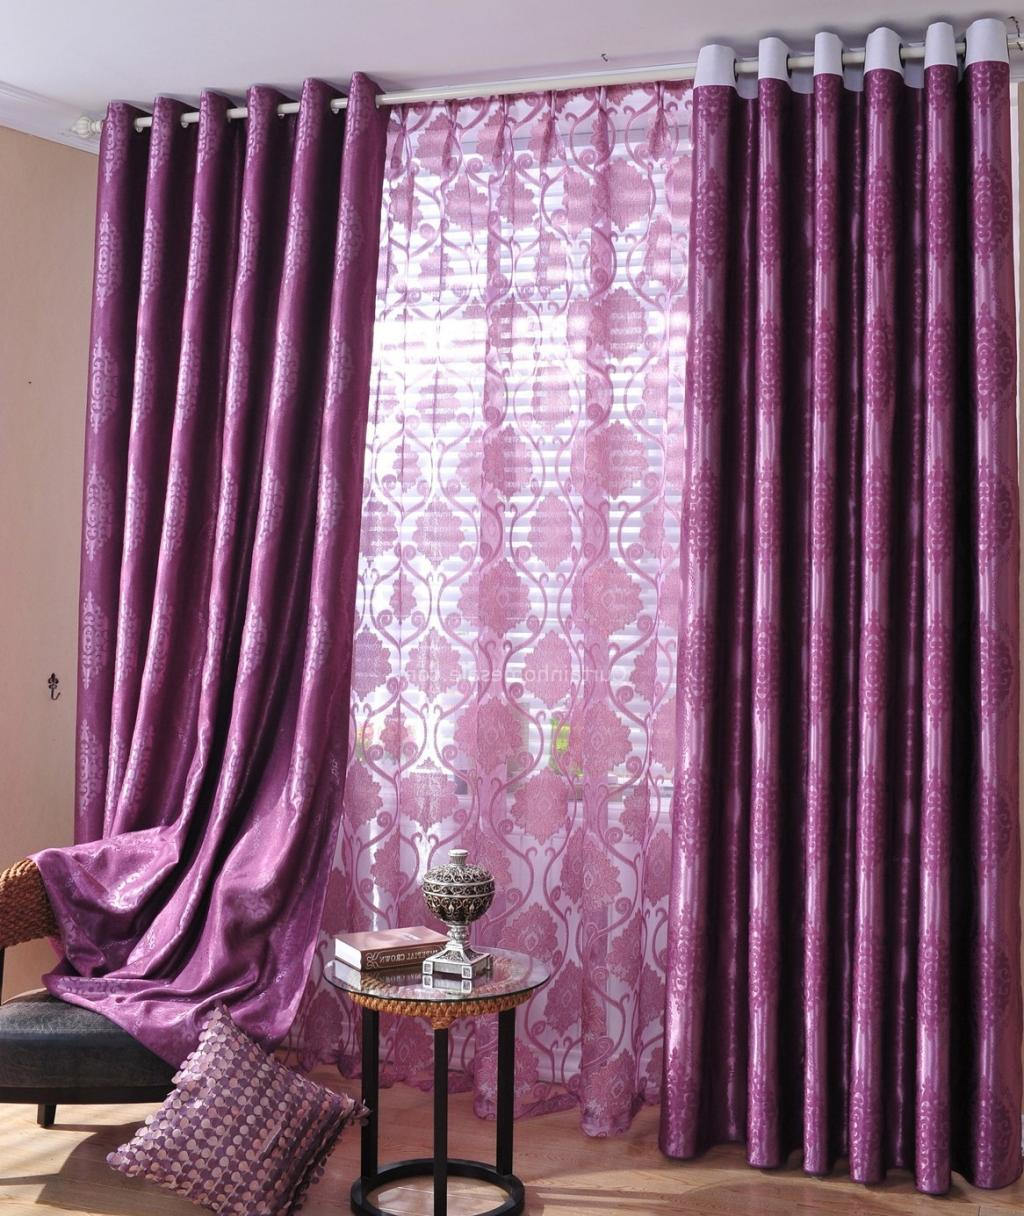 Purple Curtains For Bedroom Small Purple Curtains For Small Purple Bedroom Decorating Home